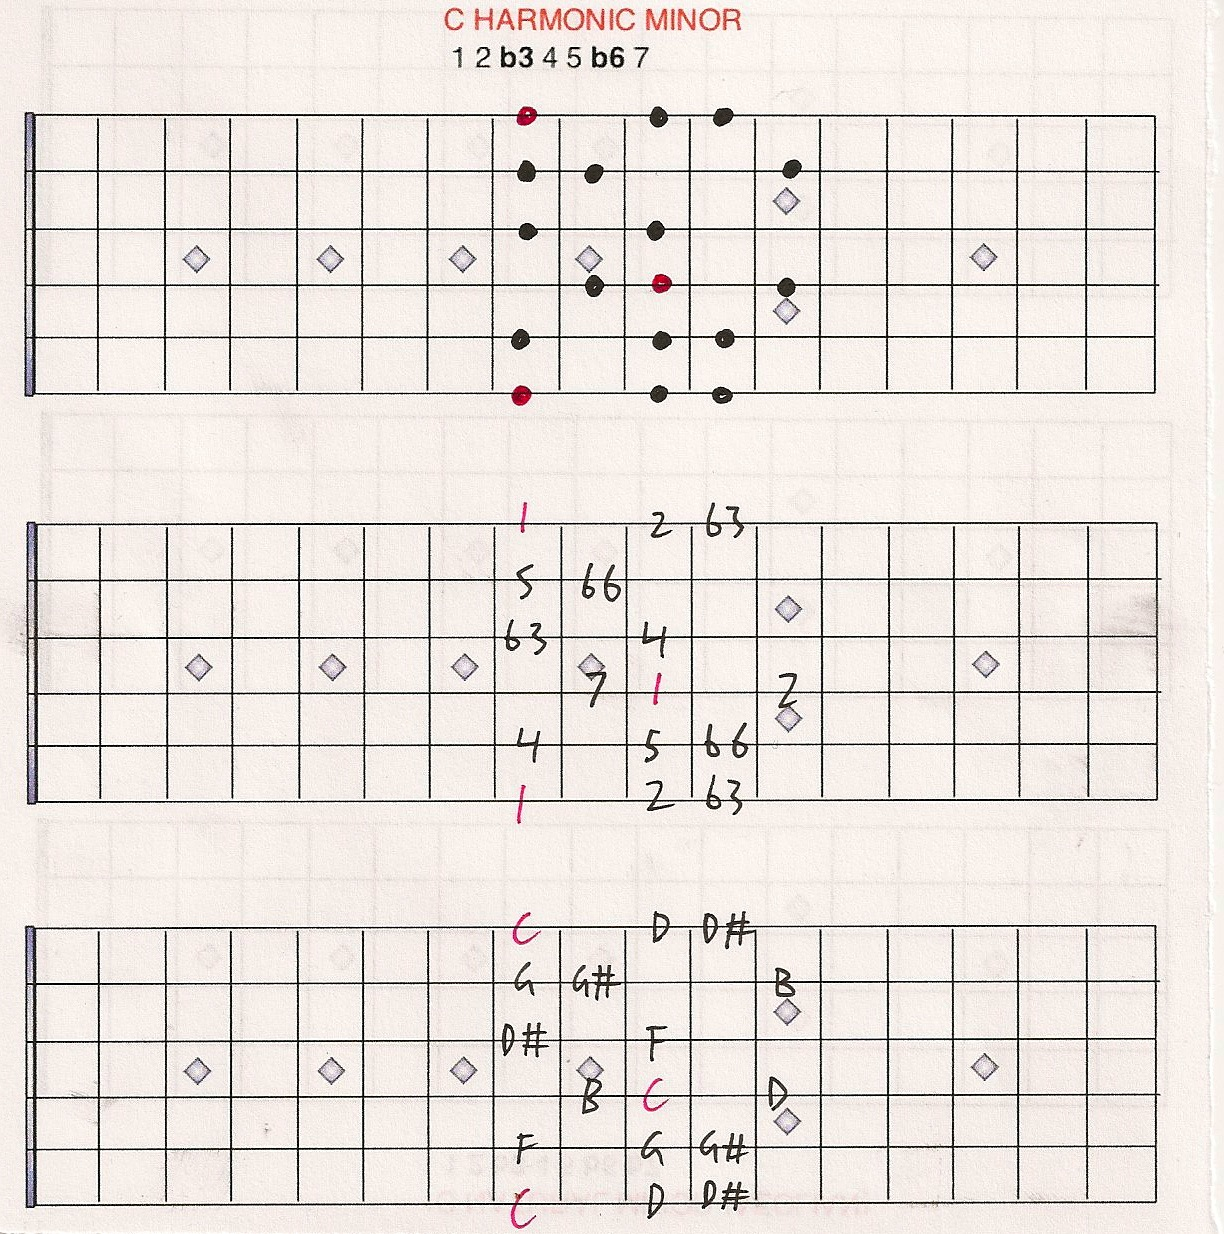 how to get the minor scale from the major scale